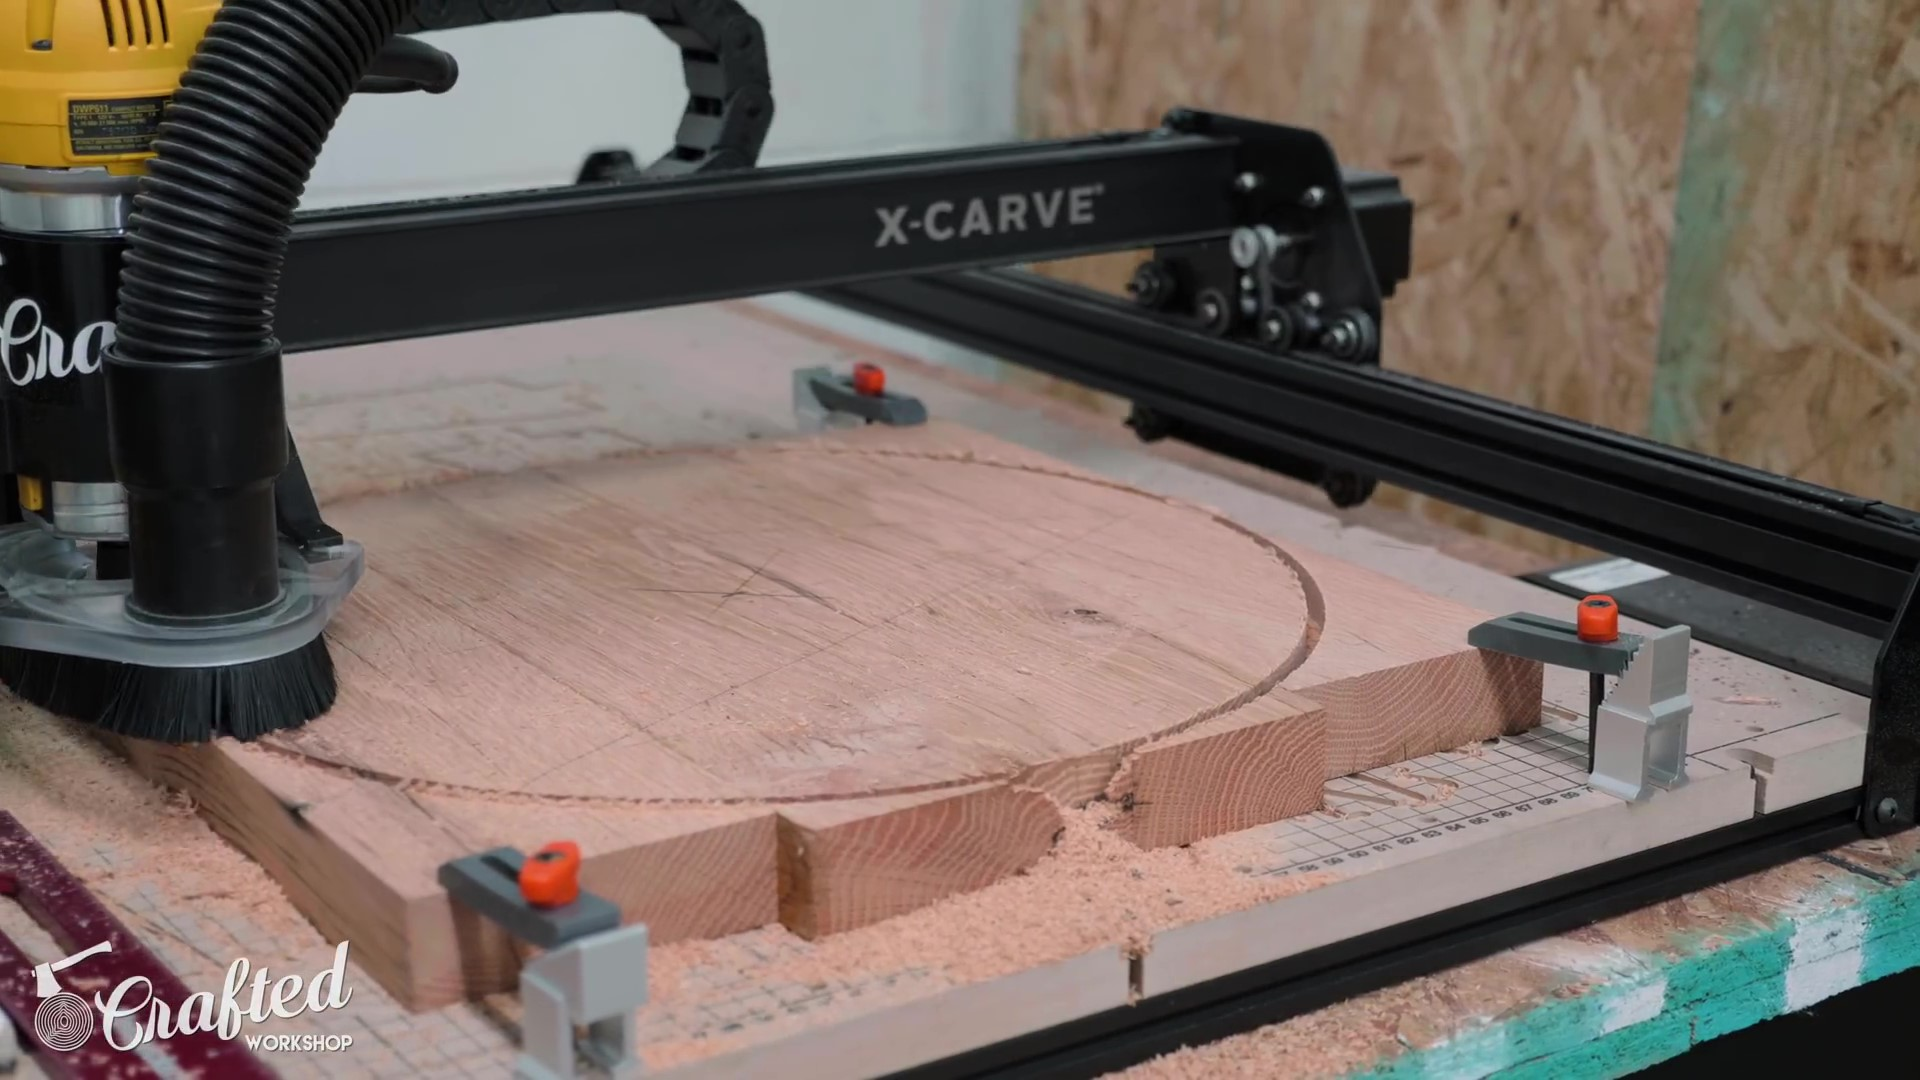 Carving the Top on the X-Carve